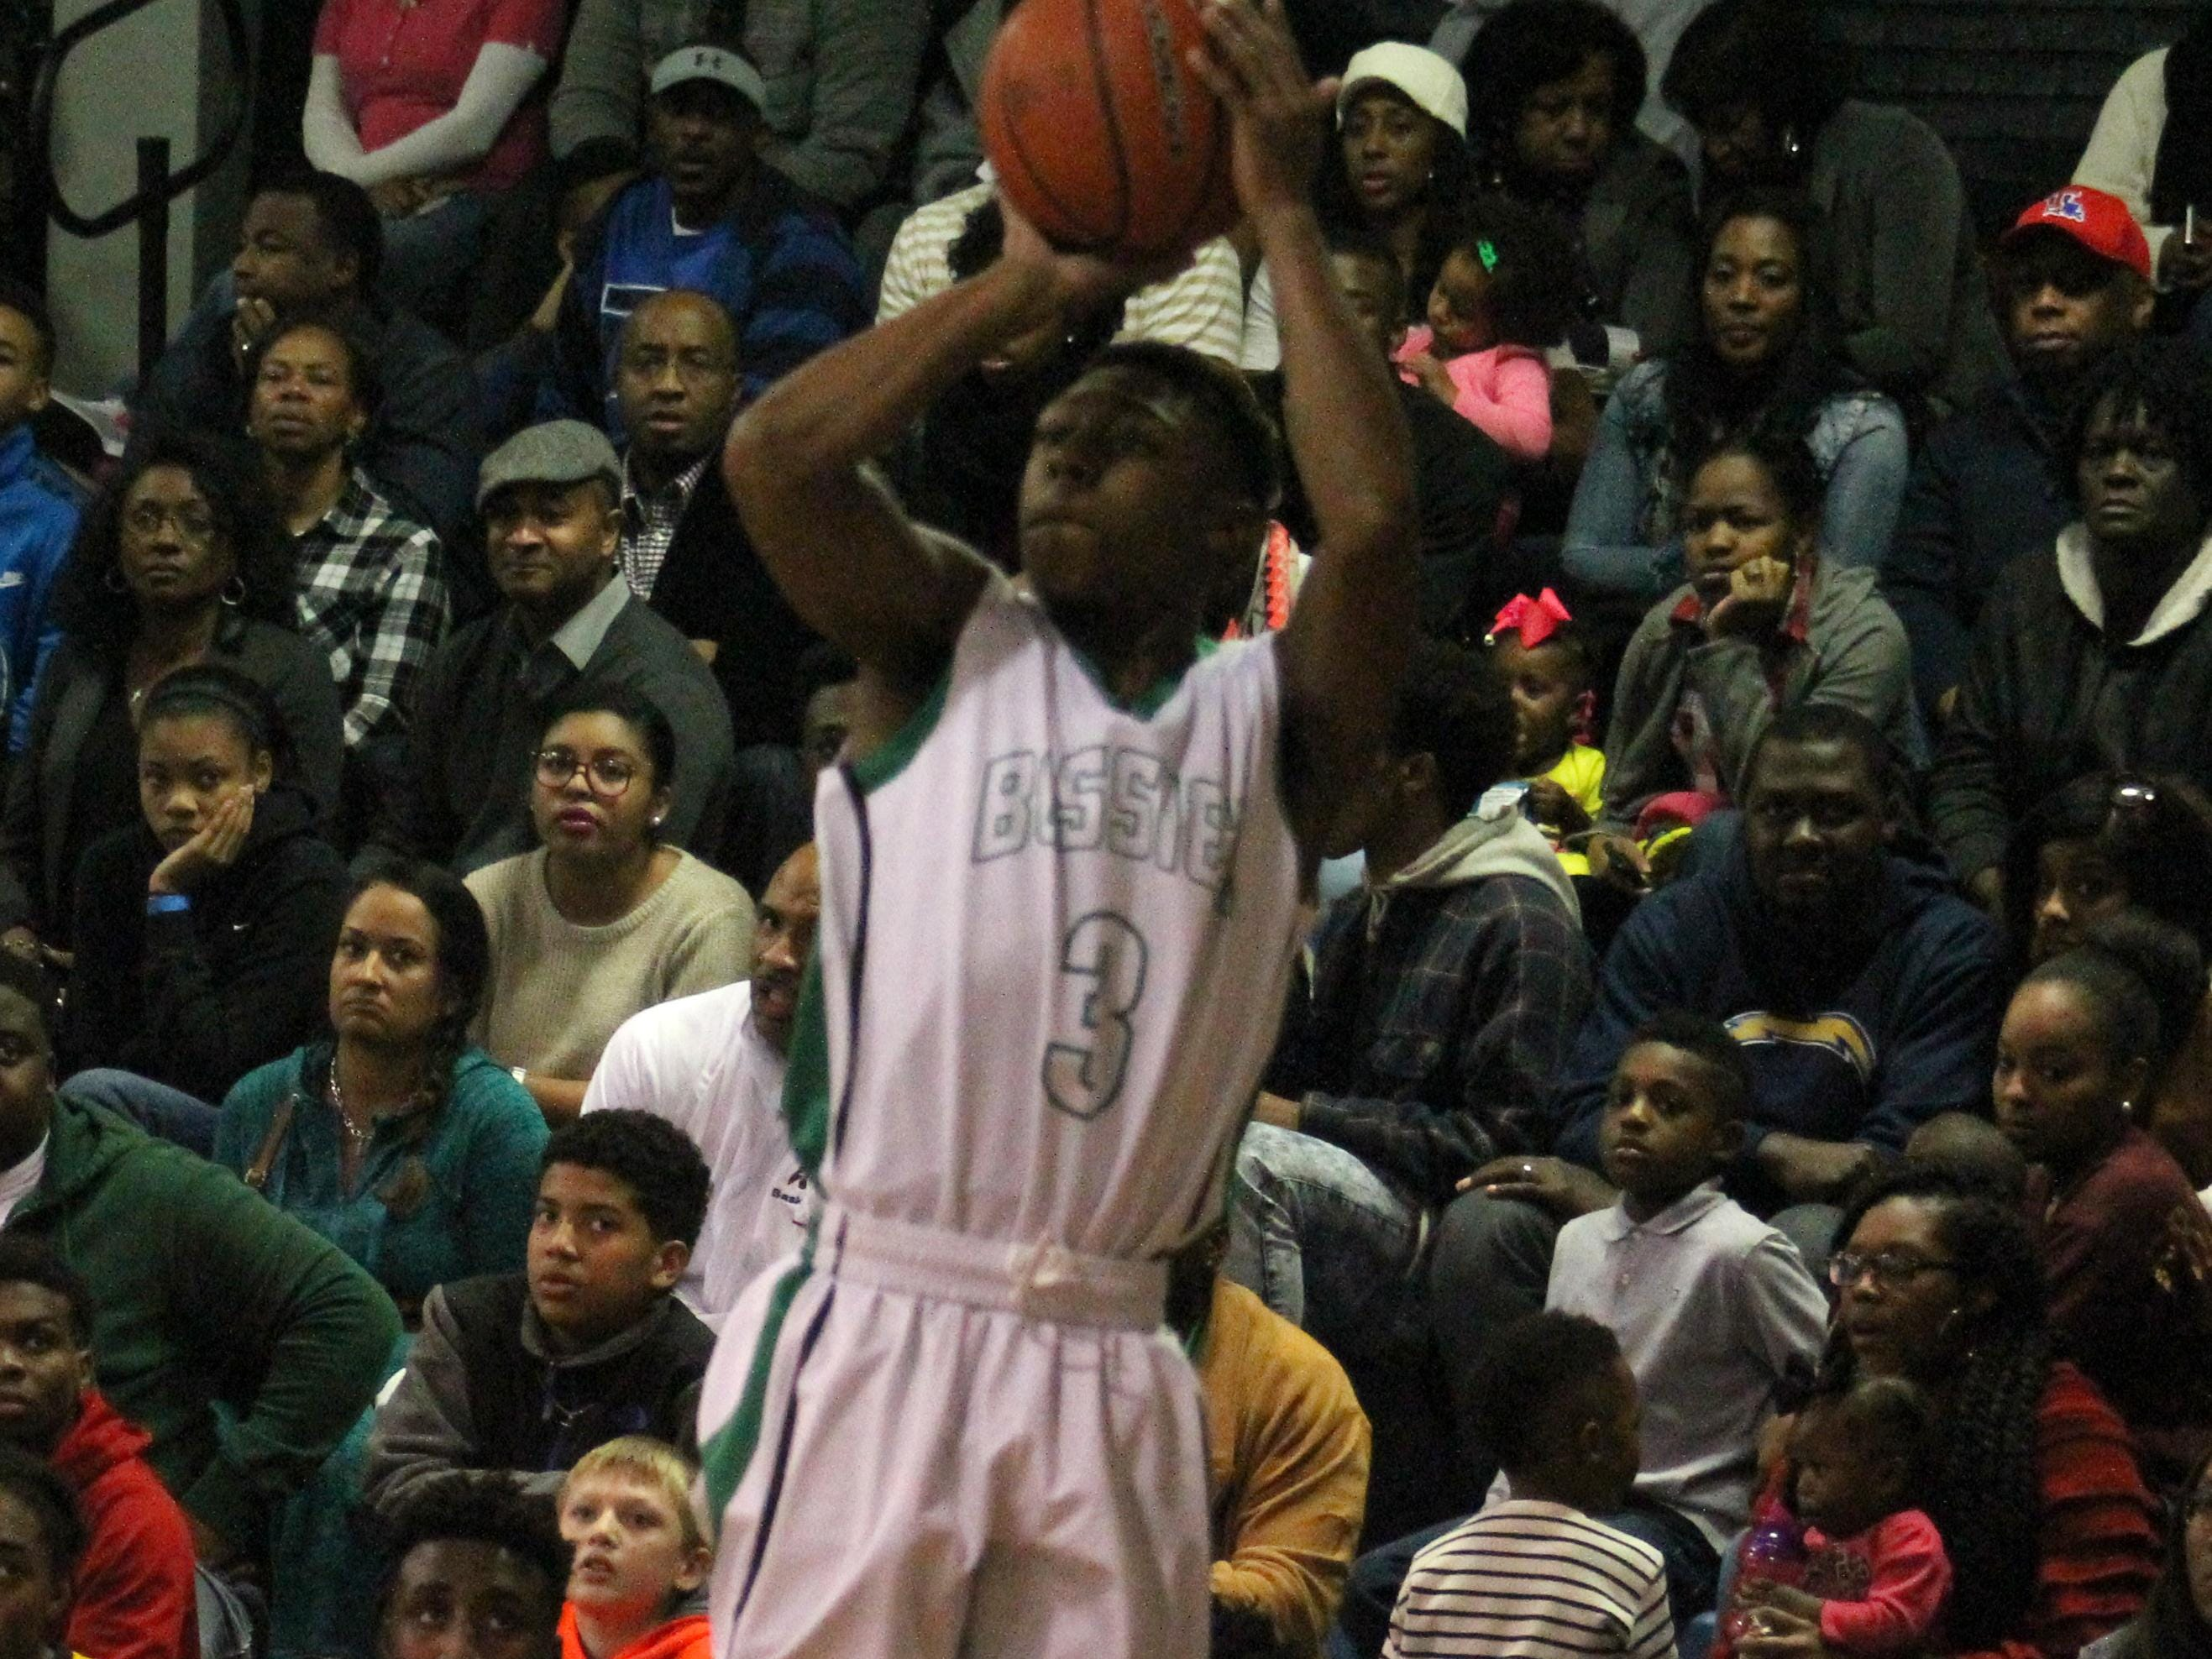 Bossier high School guard Larry Robinson(3) attempts the 3-point shot in a game earlier this season.